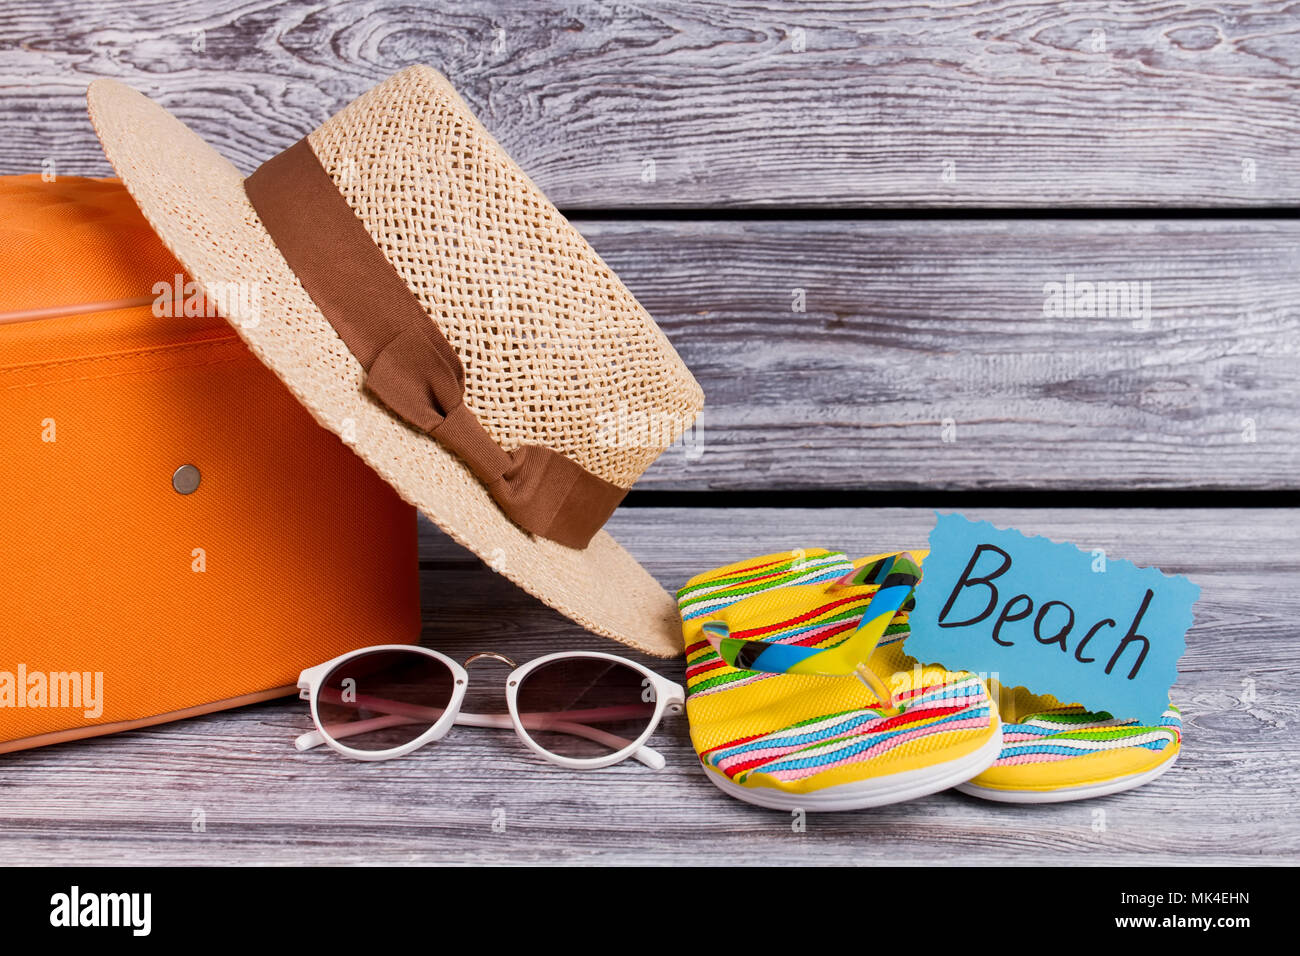 6058eef6e6 Beach clothing concept. Women's beachwear and accessories on wooden  background.